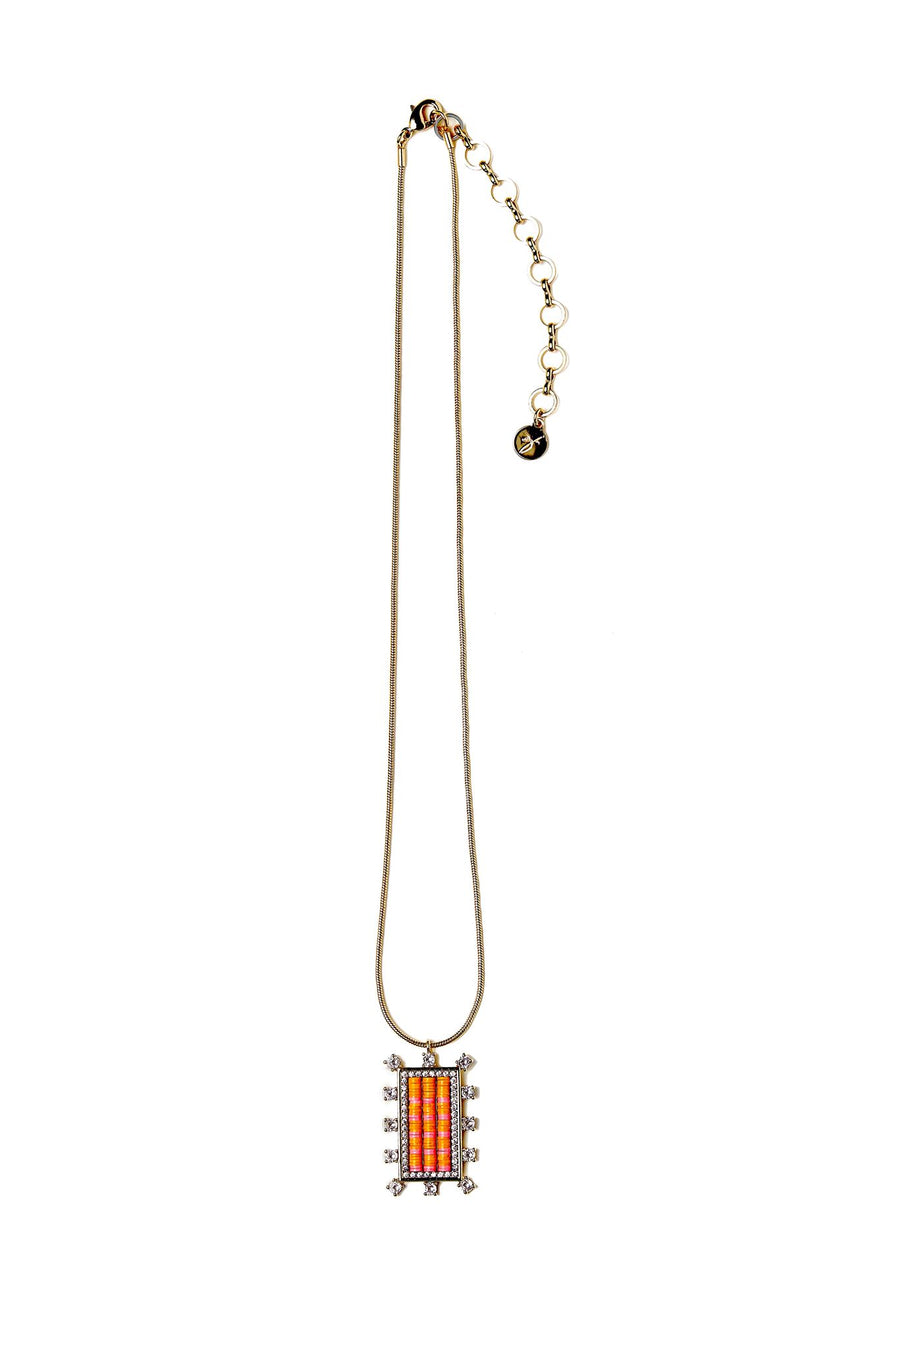 ANGUILLA PENDANT | AT THE COPA